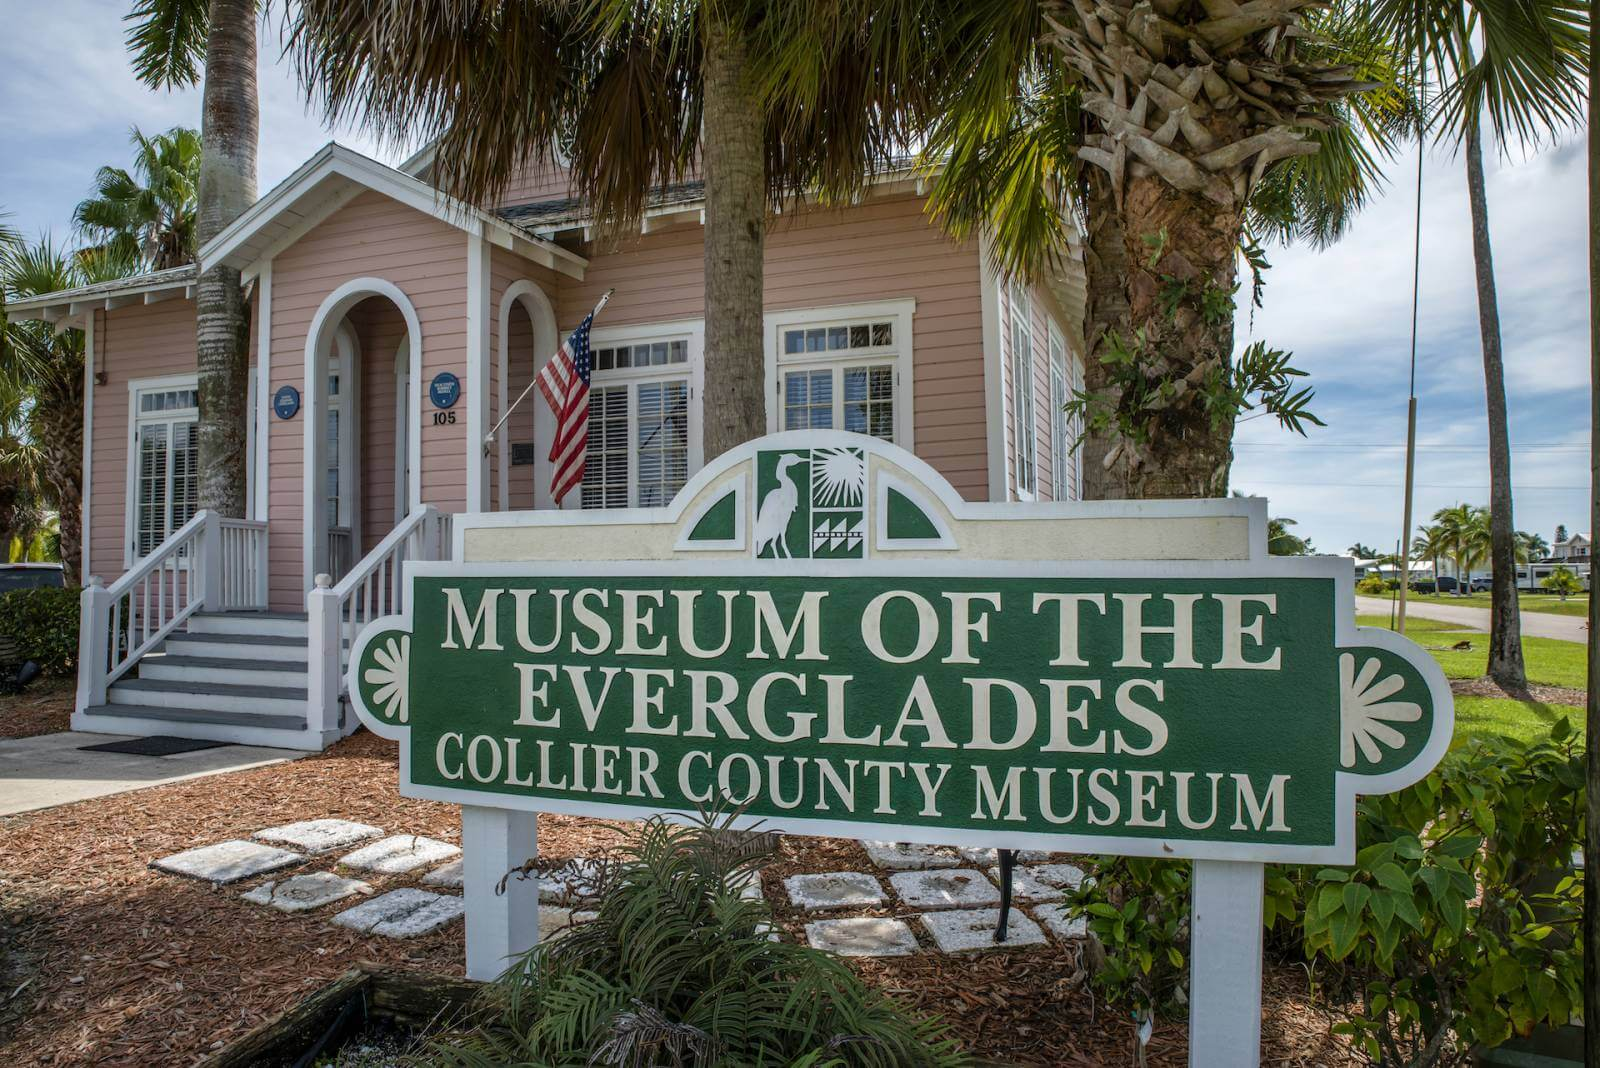 Museum of the Everglades Collier County Museum in Everglades City, Florida.